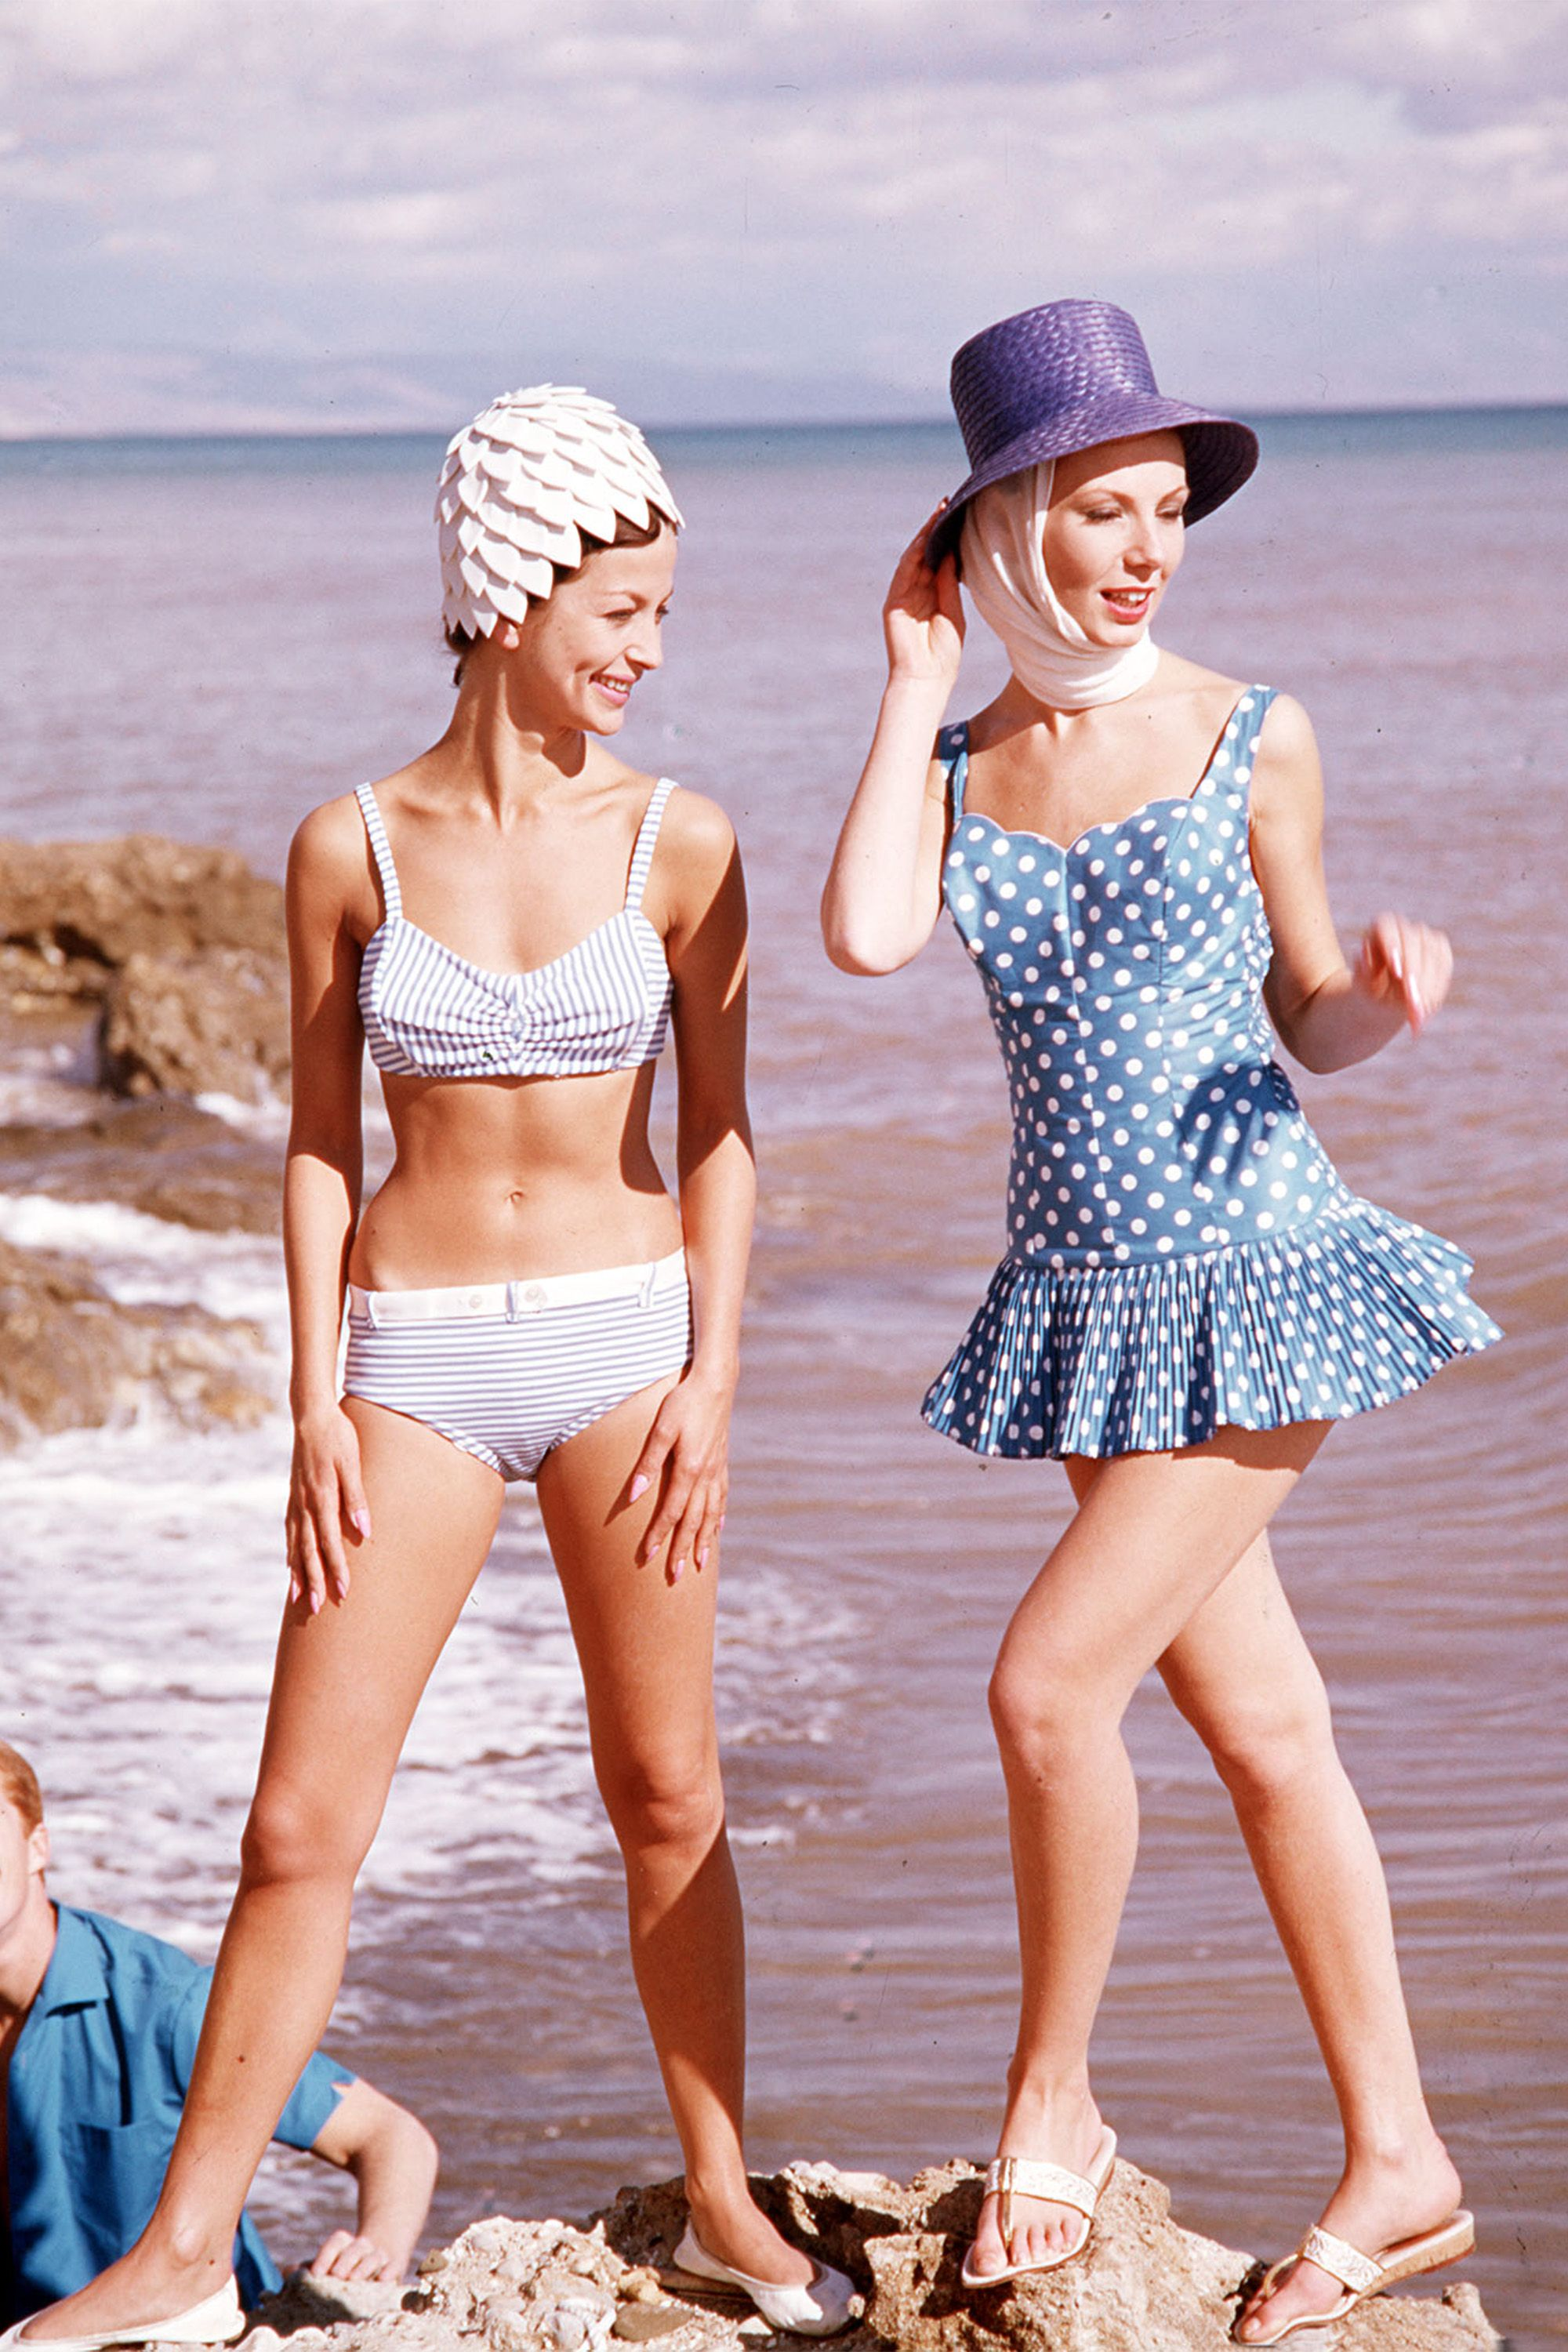 c98524f33235 Best 1960s Fashion Trends and Outfits - 60s Fashion and Style